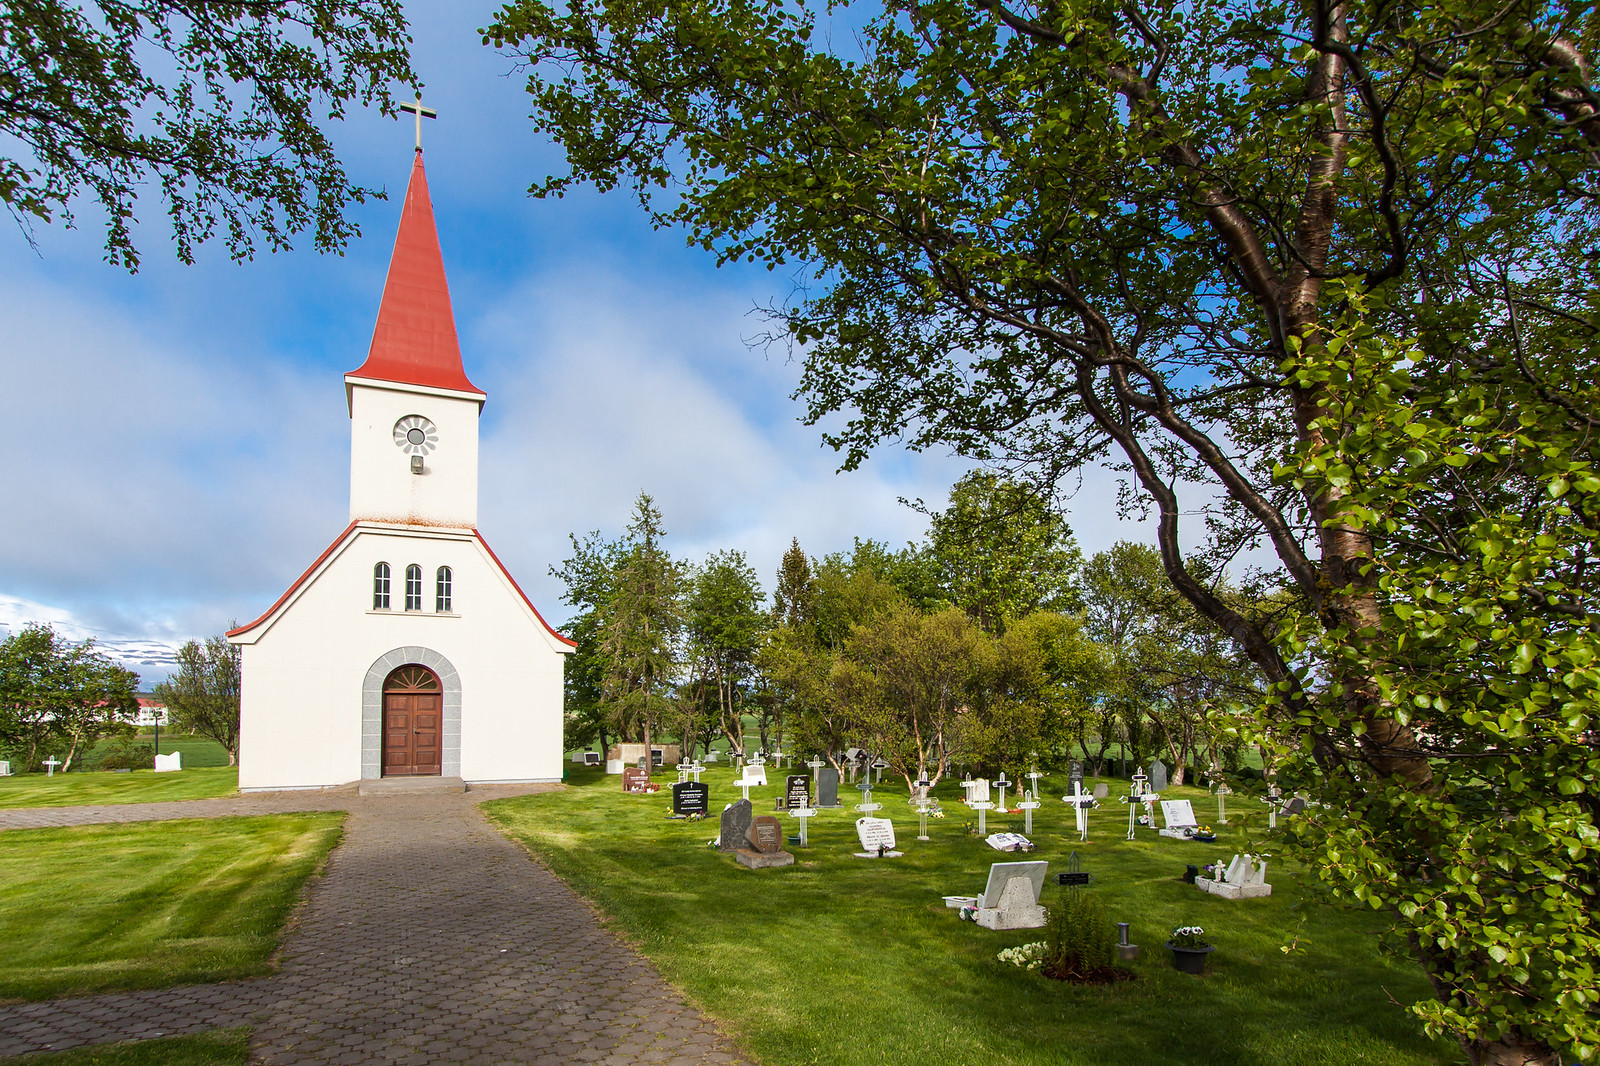 Iceland church and cemetery